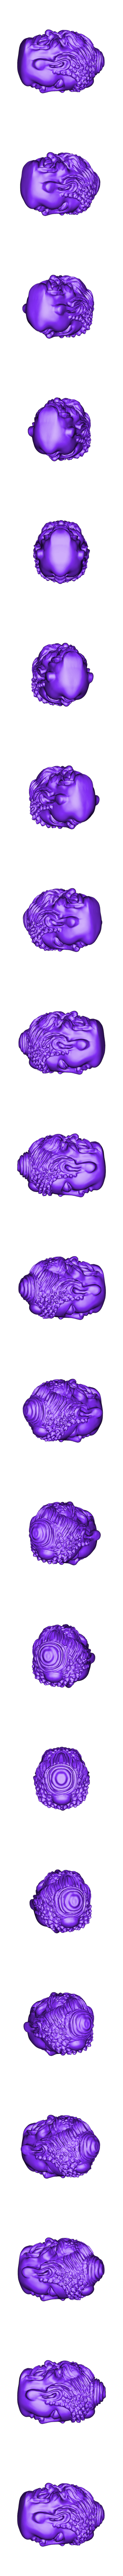 XA369佛魔一念之差.stl Download free STL file buddha and demon face 2  • 3D printable model, stlfilesfree